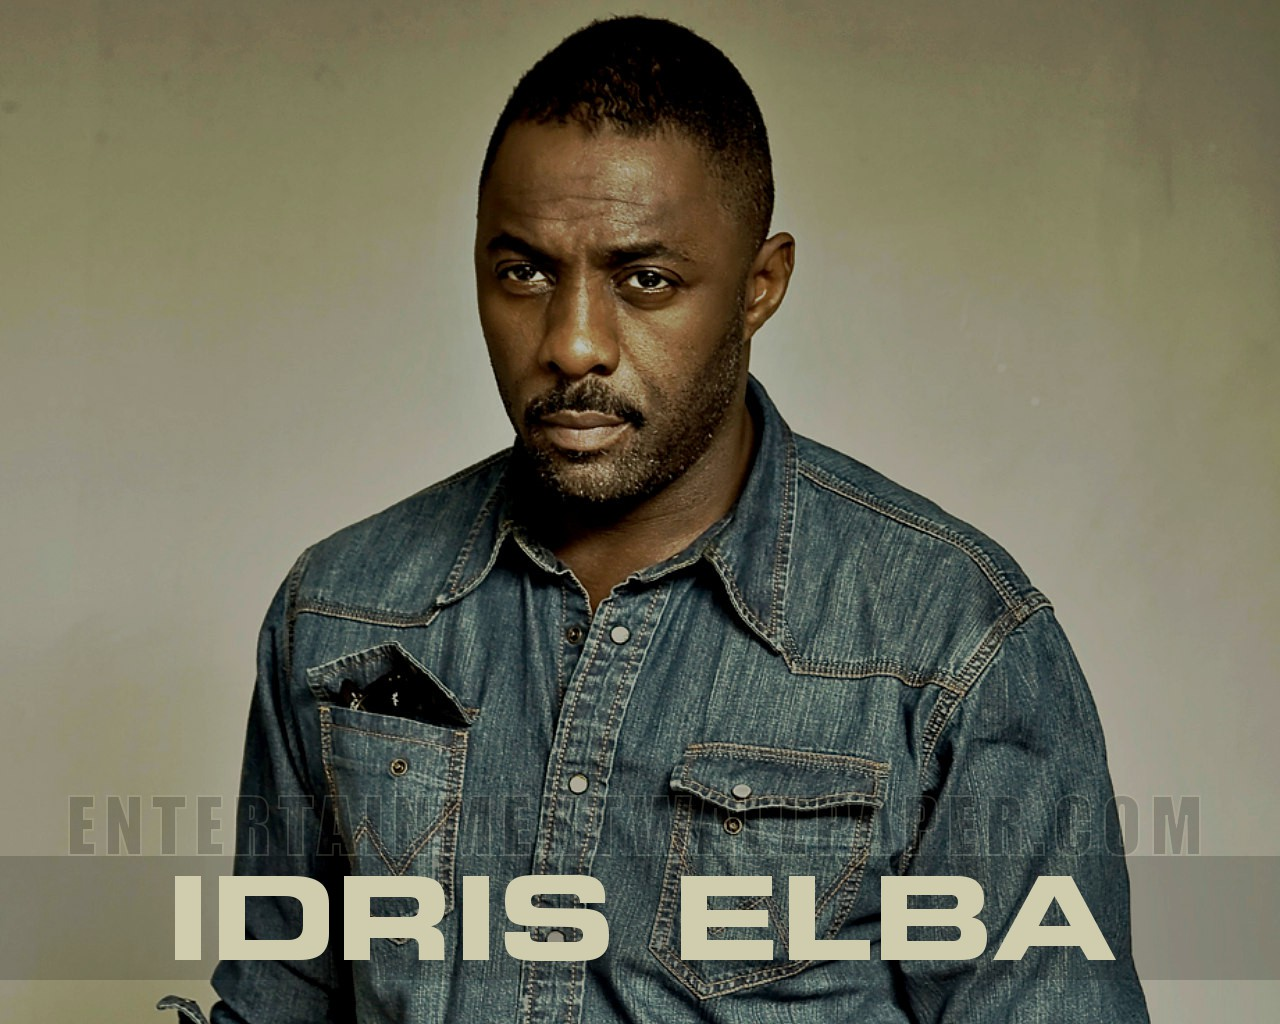 Idris Elba Wallpaper - Original size, download now.